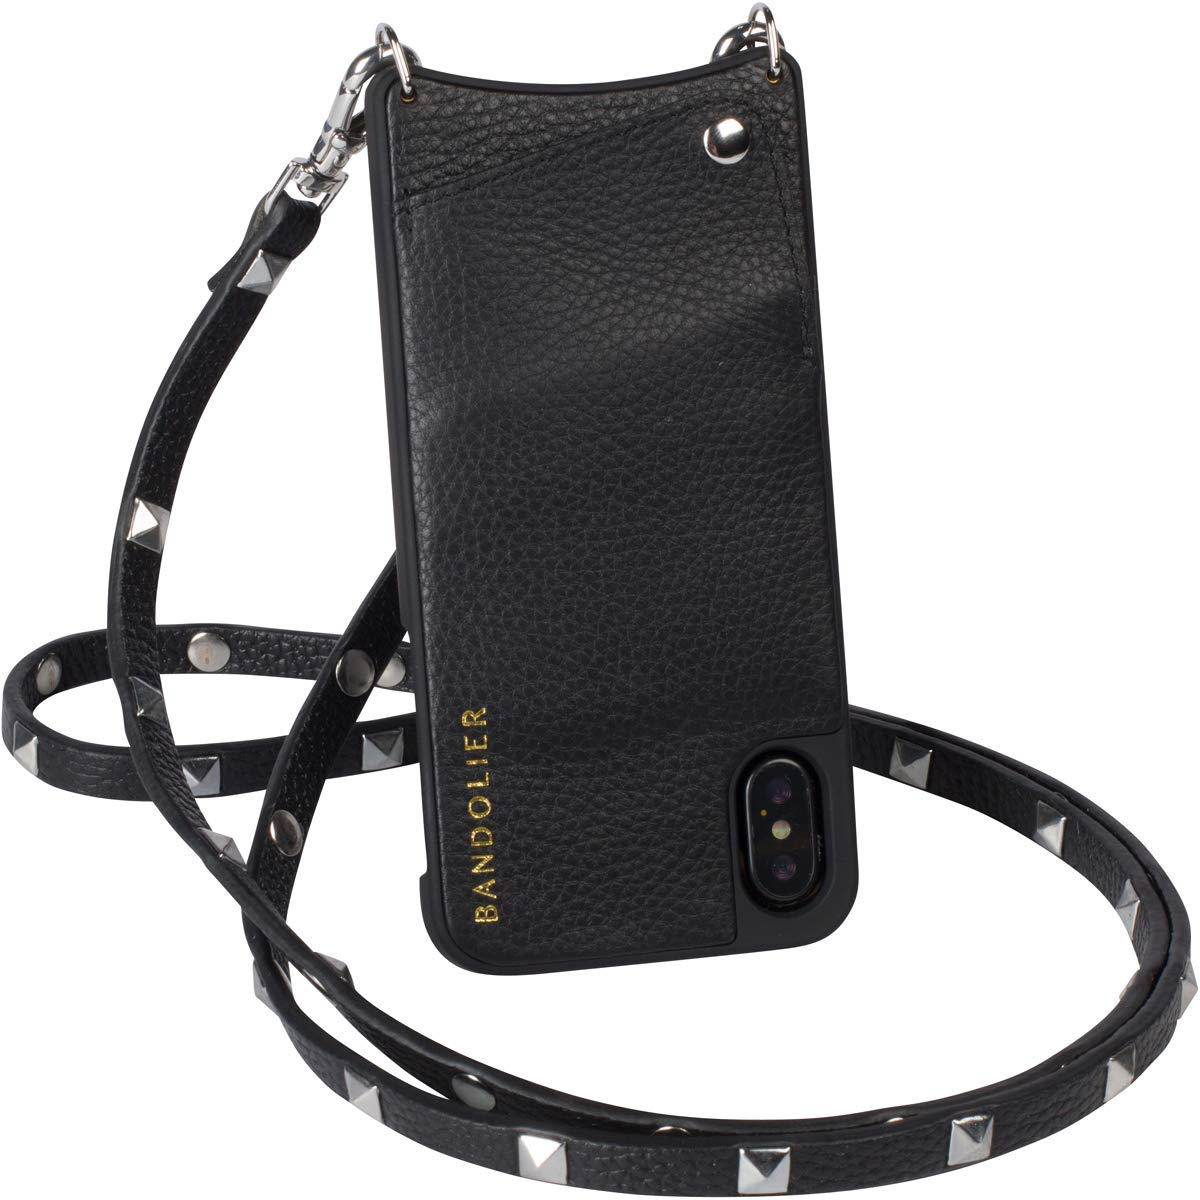 Bandolier [Sarah] Crossbody Phone Case and Wallet - Compatible with iPhone X & XS - Black Pebble Leather with Silver Detail by Bandolier